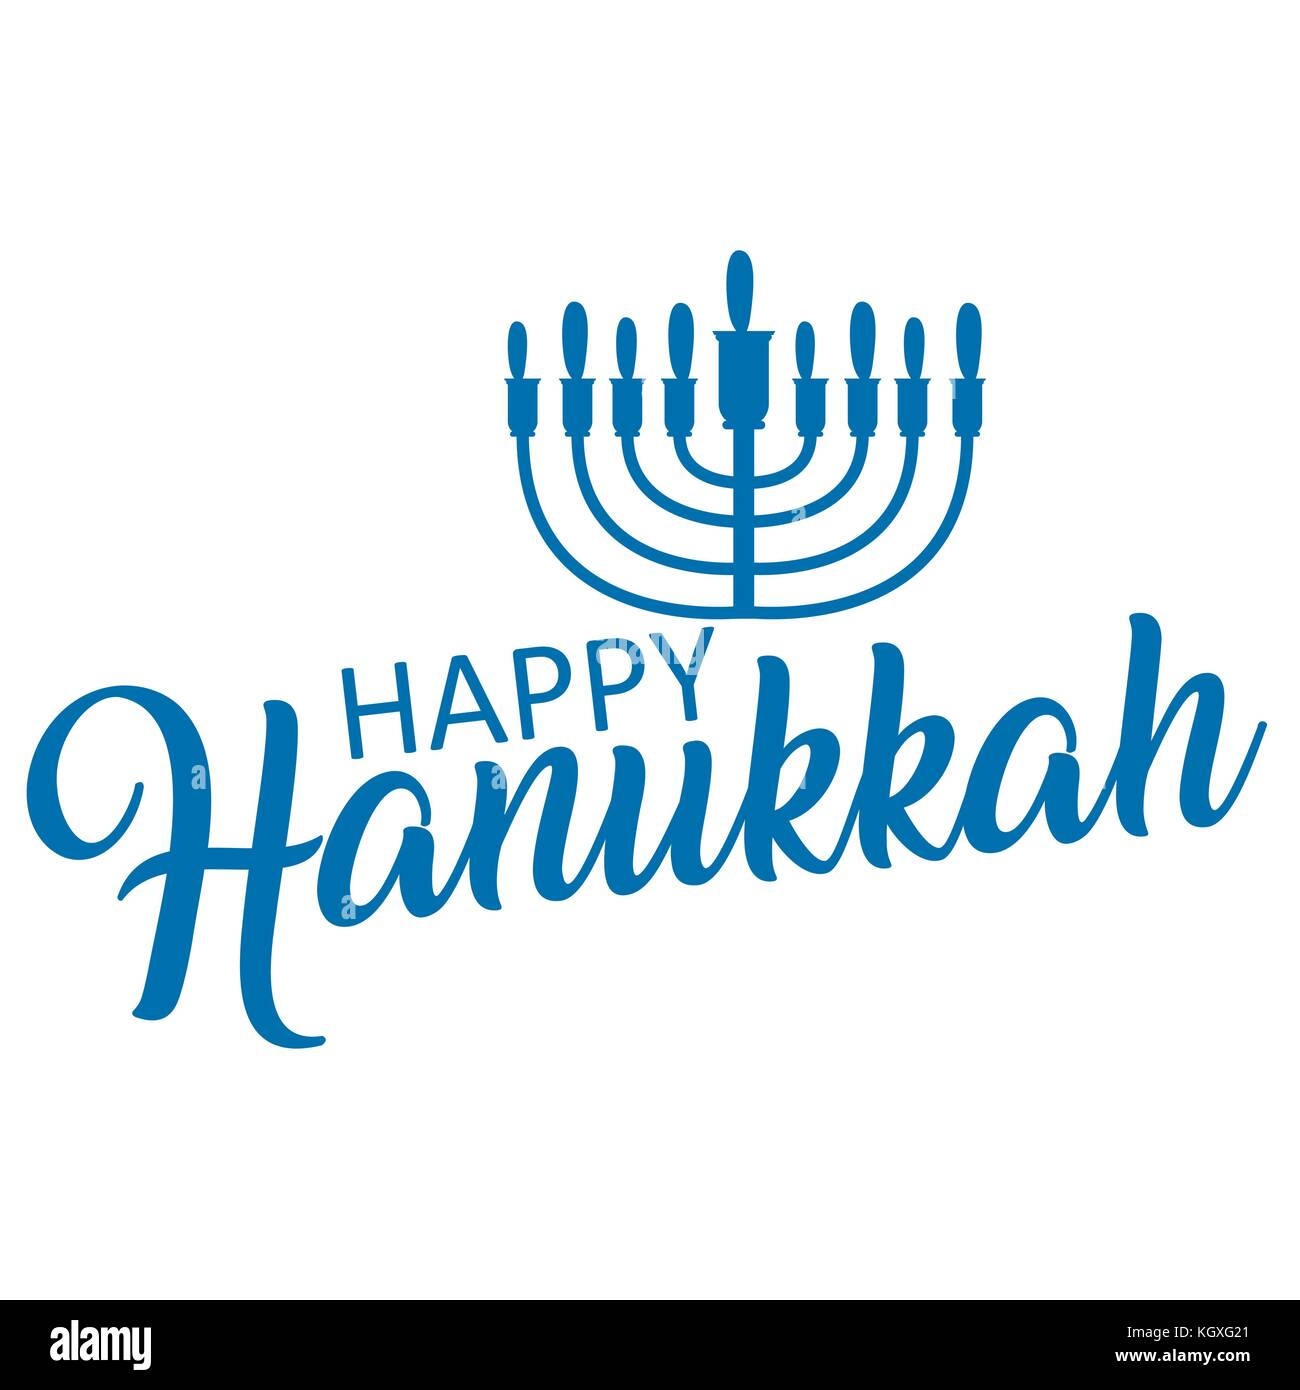 Lettering of happy Hanukkah logo template. - Stock Vector